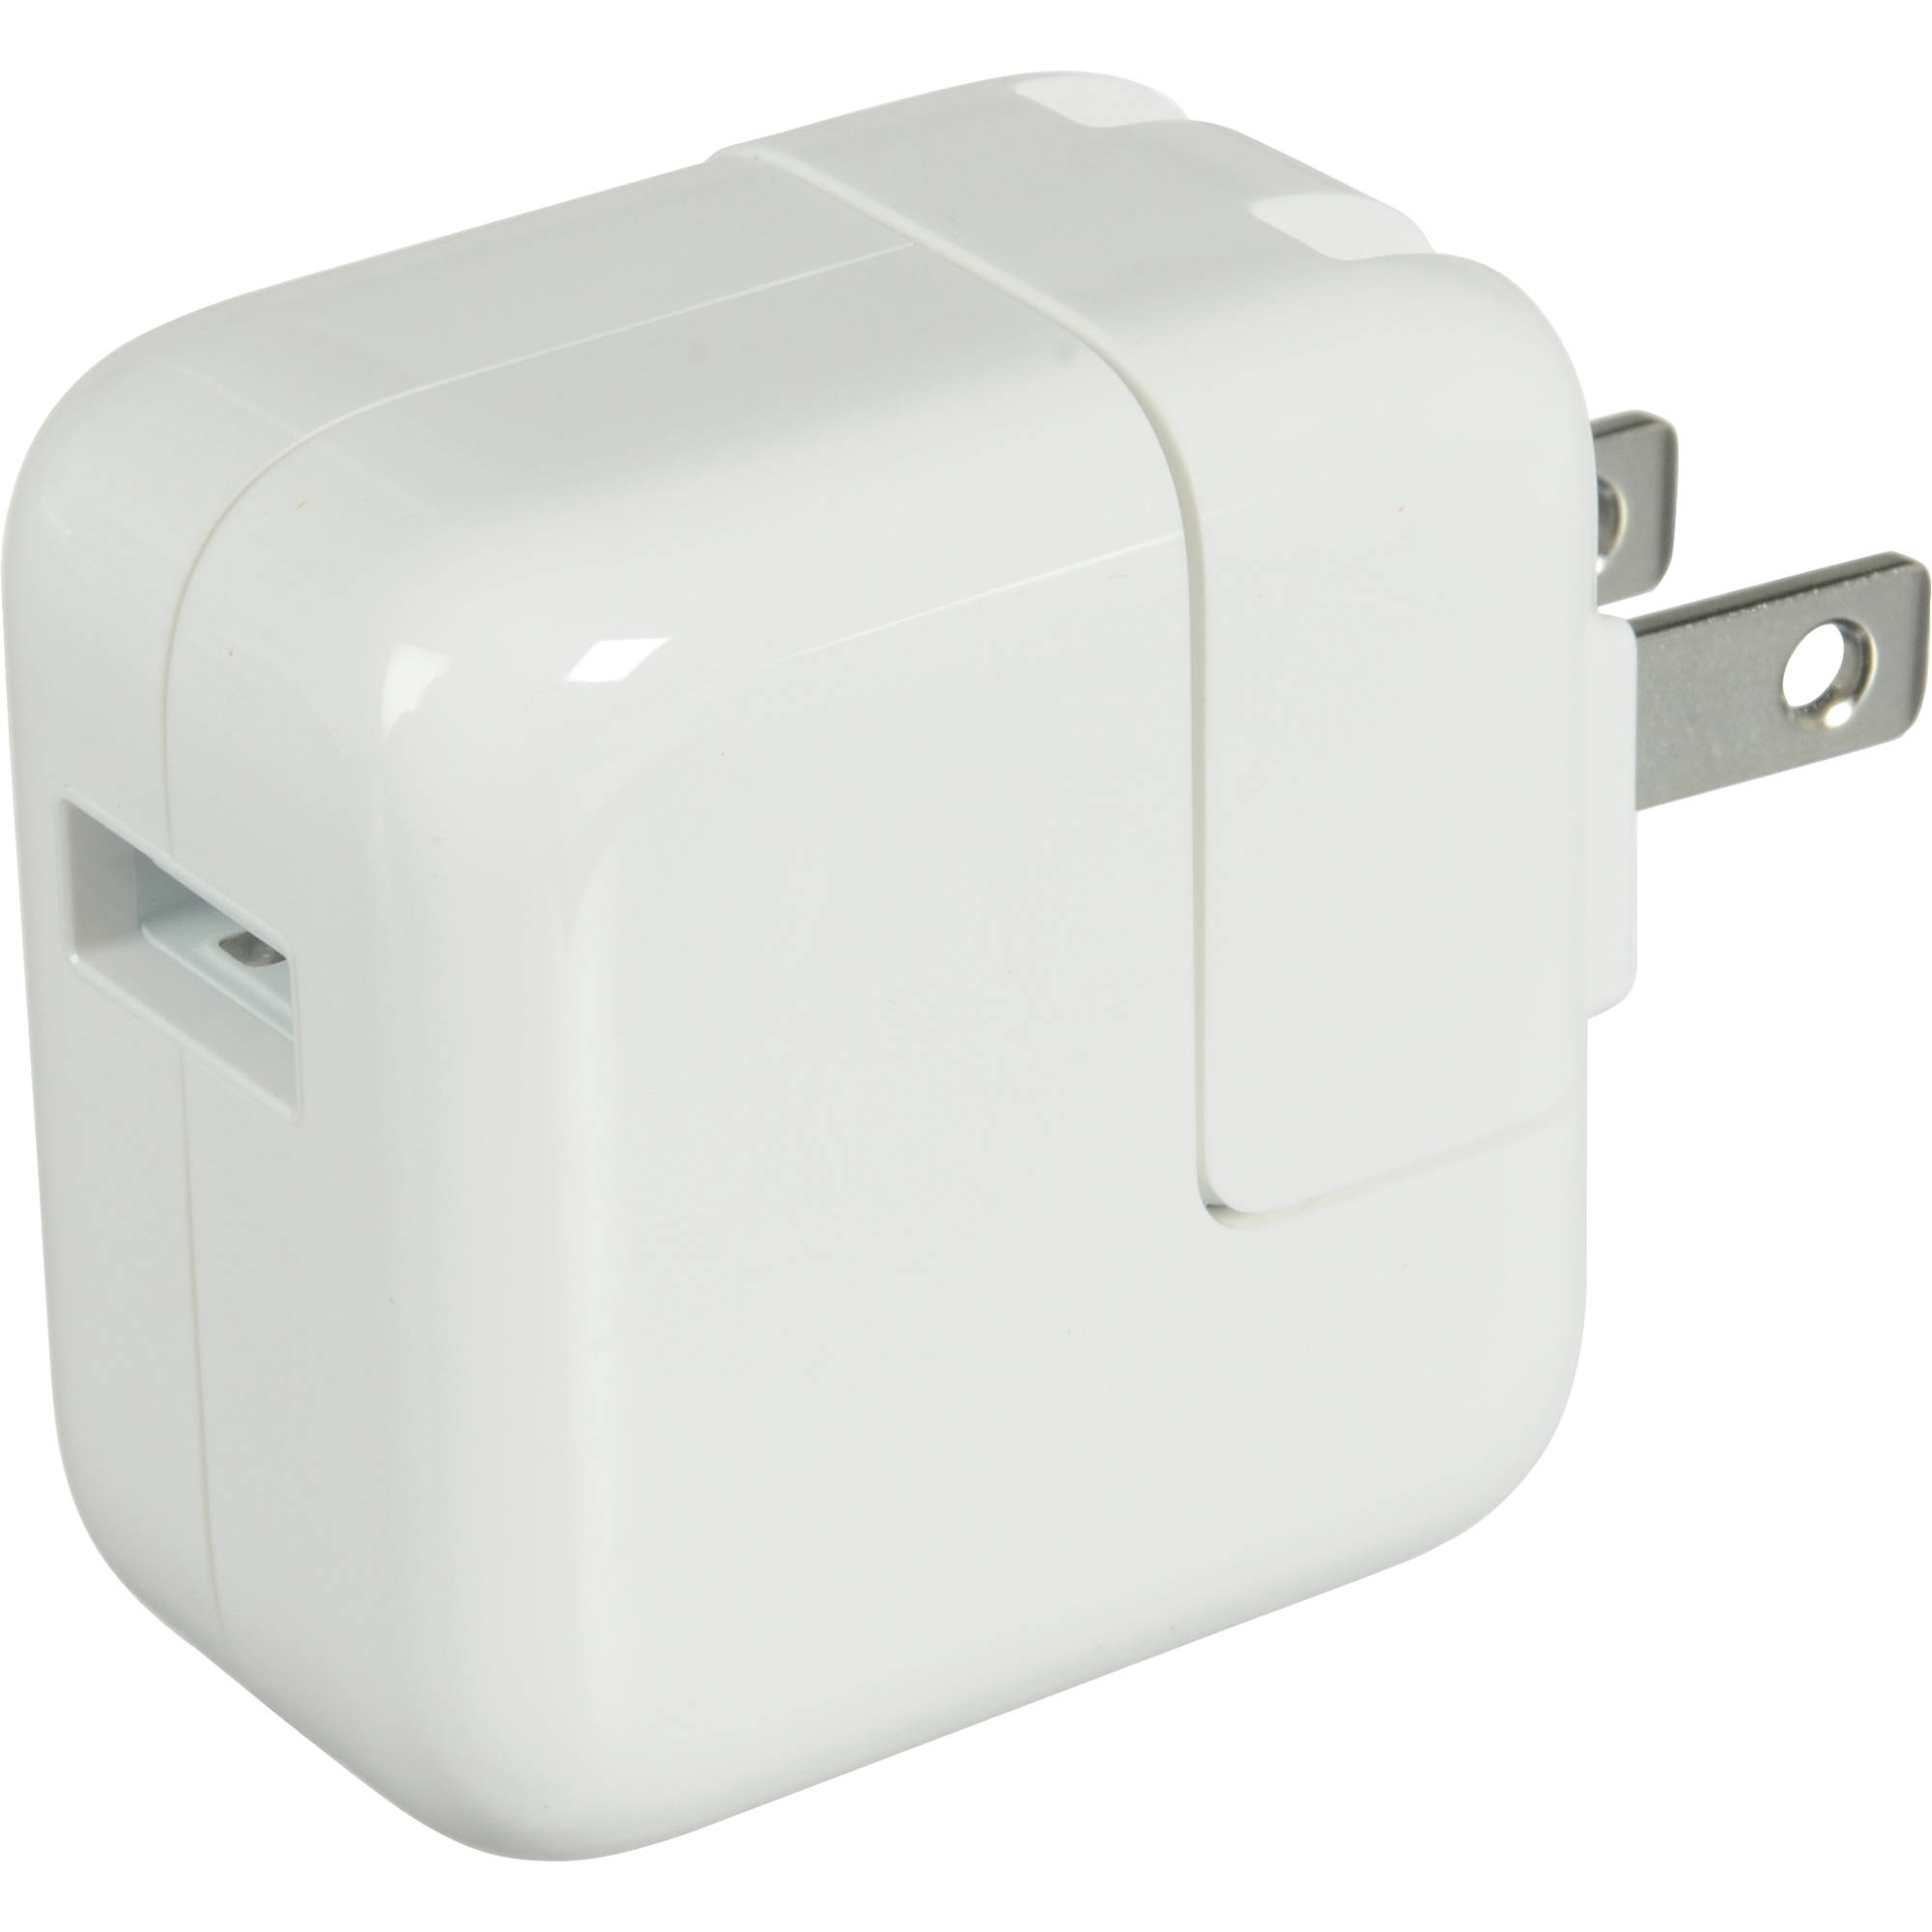 Can I charge my iPhone while the iBridge 3 is connected to the